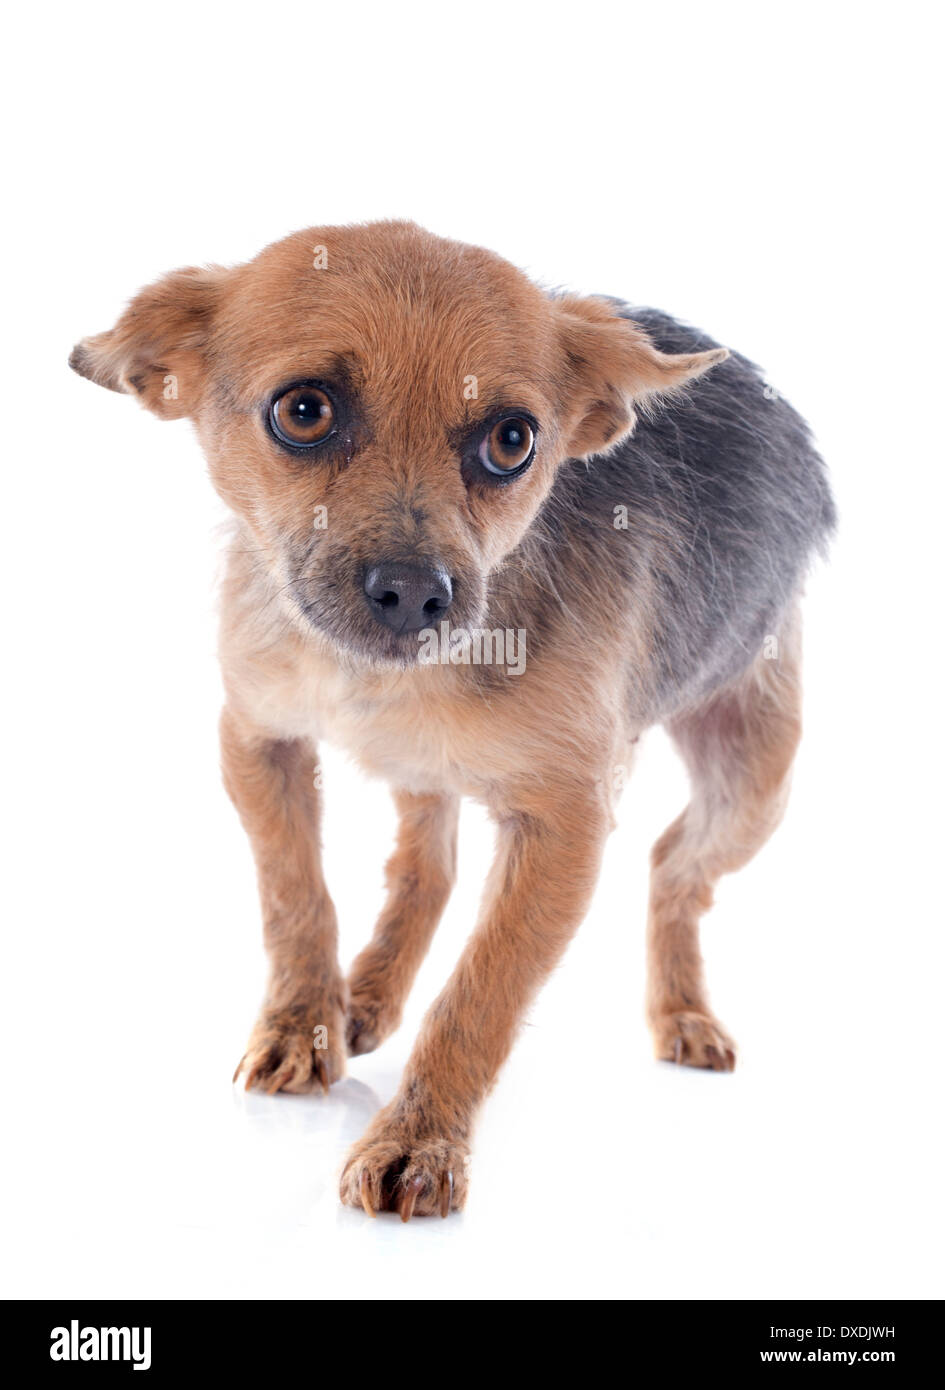 crossbred chihuahua in front of white background - Stock Image